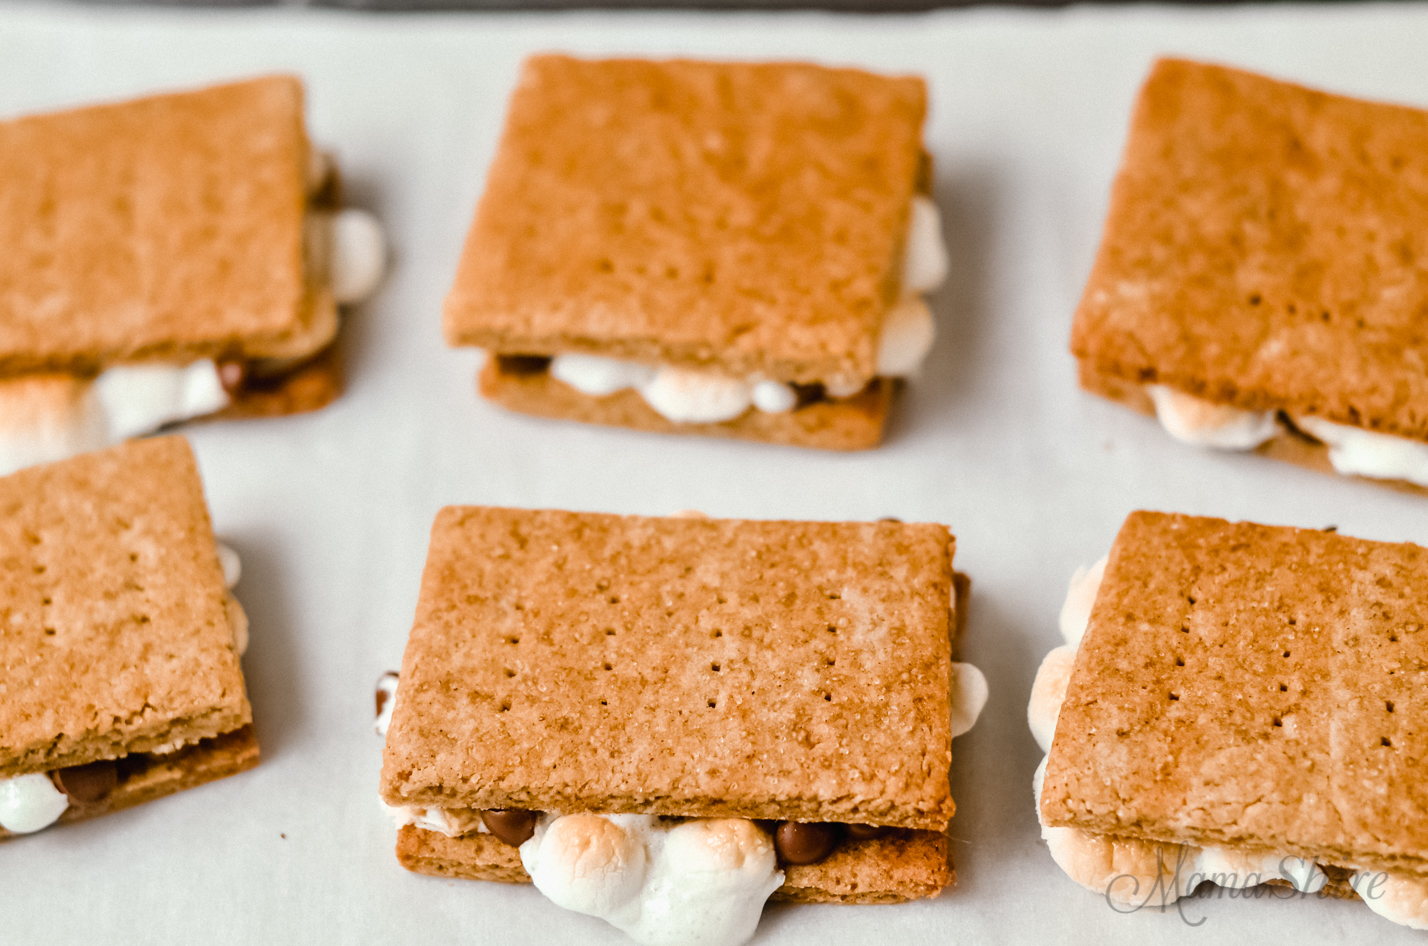 Gooey marshmallow coming out of gluten-free s'more oven baked.